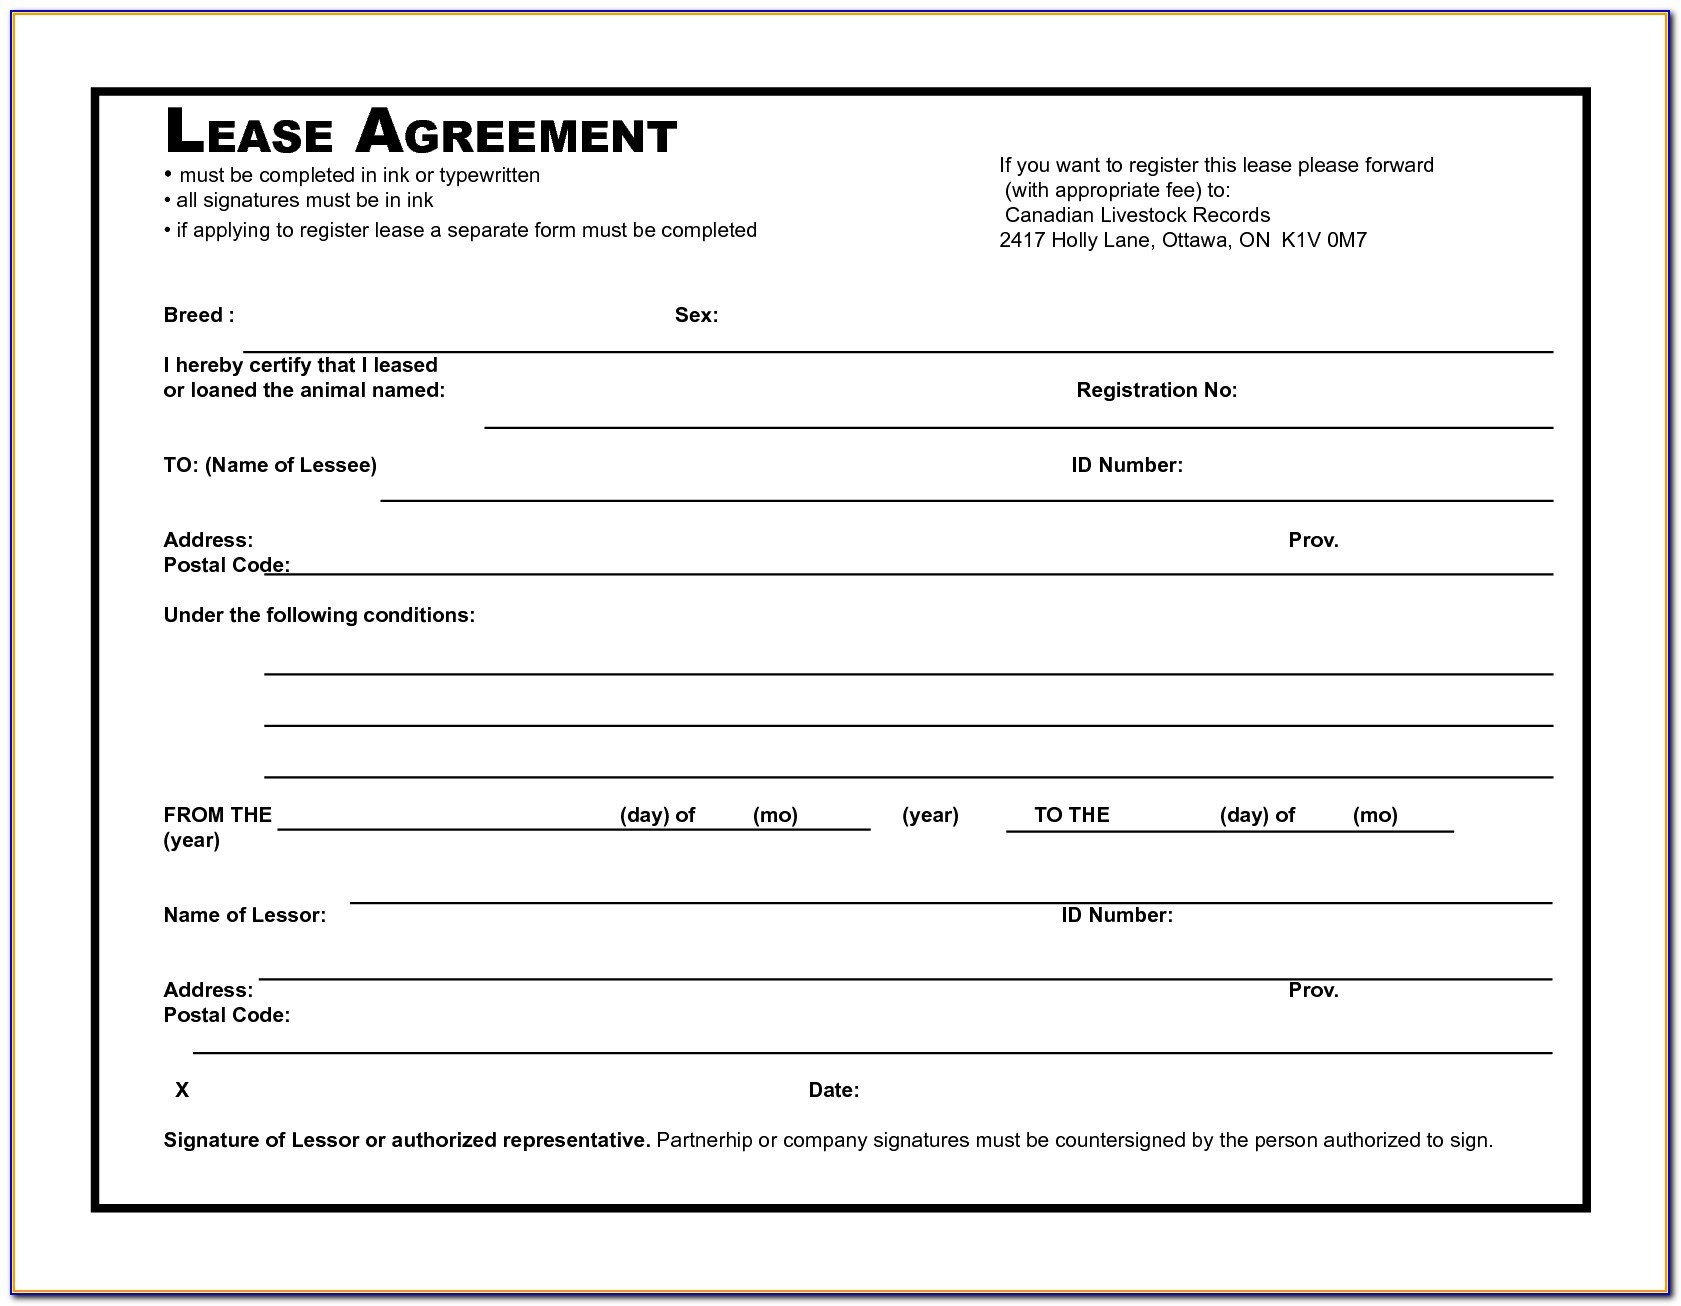 Lease Agreement Document Template